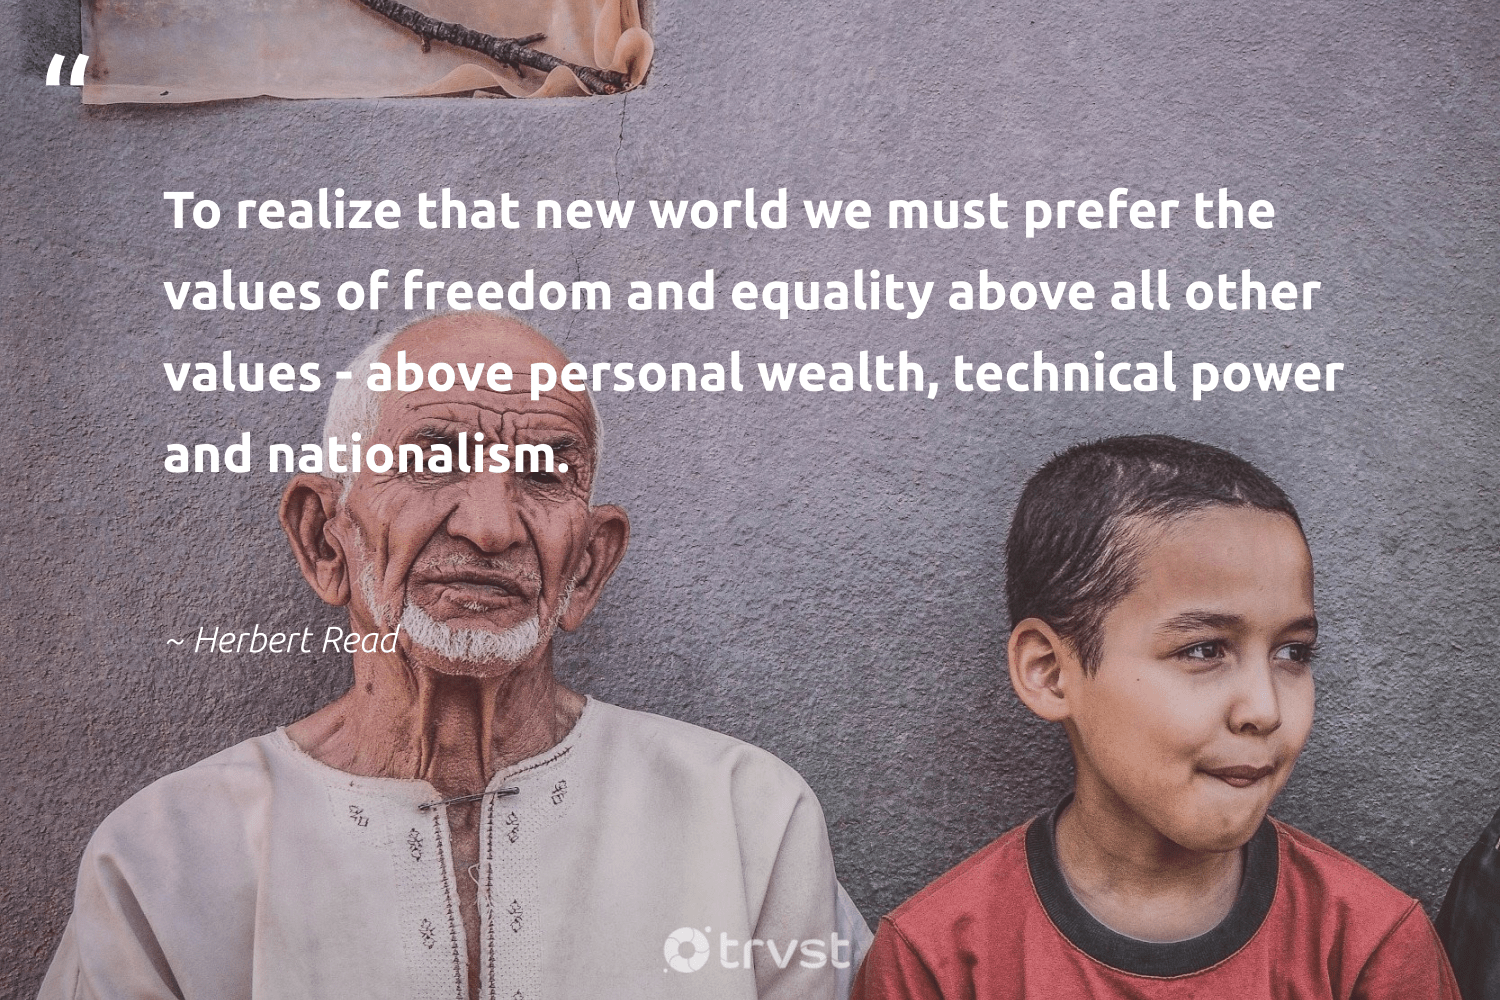 """To realize that new world we must prefer the values of freedom and equality above all other values - above personal wealth, technical power and nationalism.""  - Herbert Read #trvst #quotes #equality #freedom #equalopportunity #giveback #bethechange #planetearthfirst #equalrights #socialgood #socialchange #dosomething"